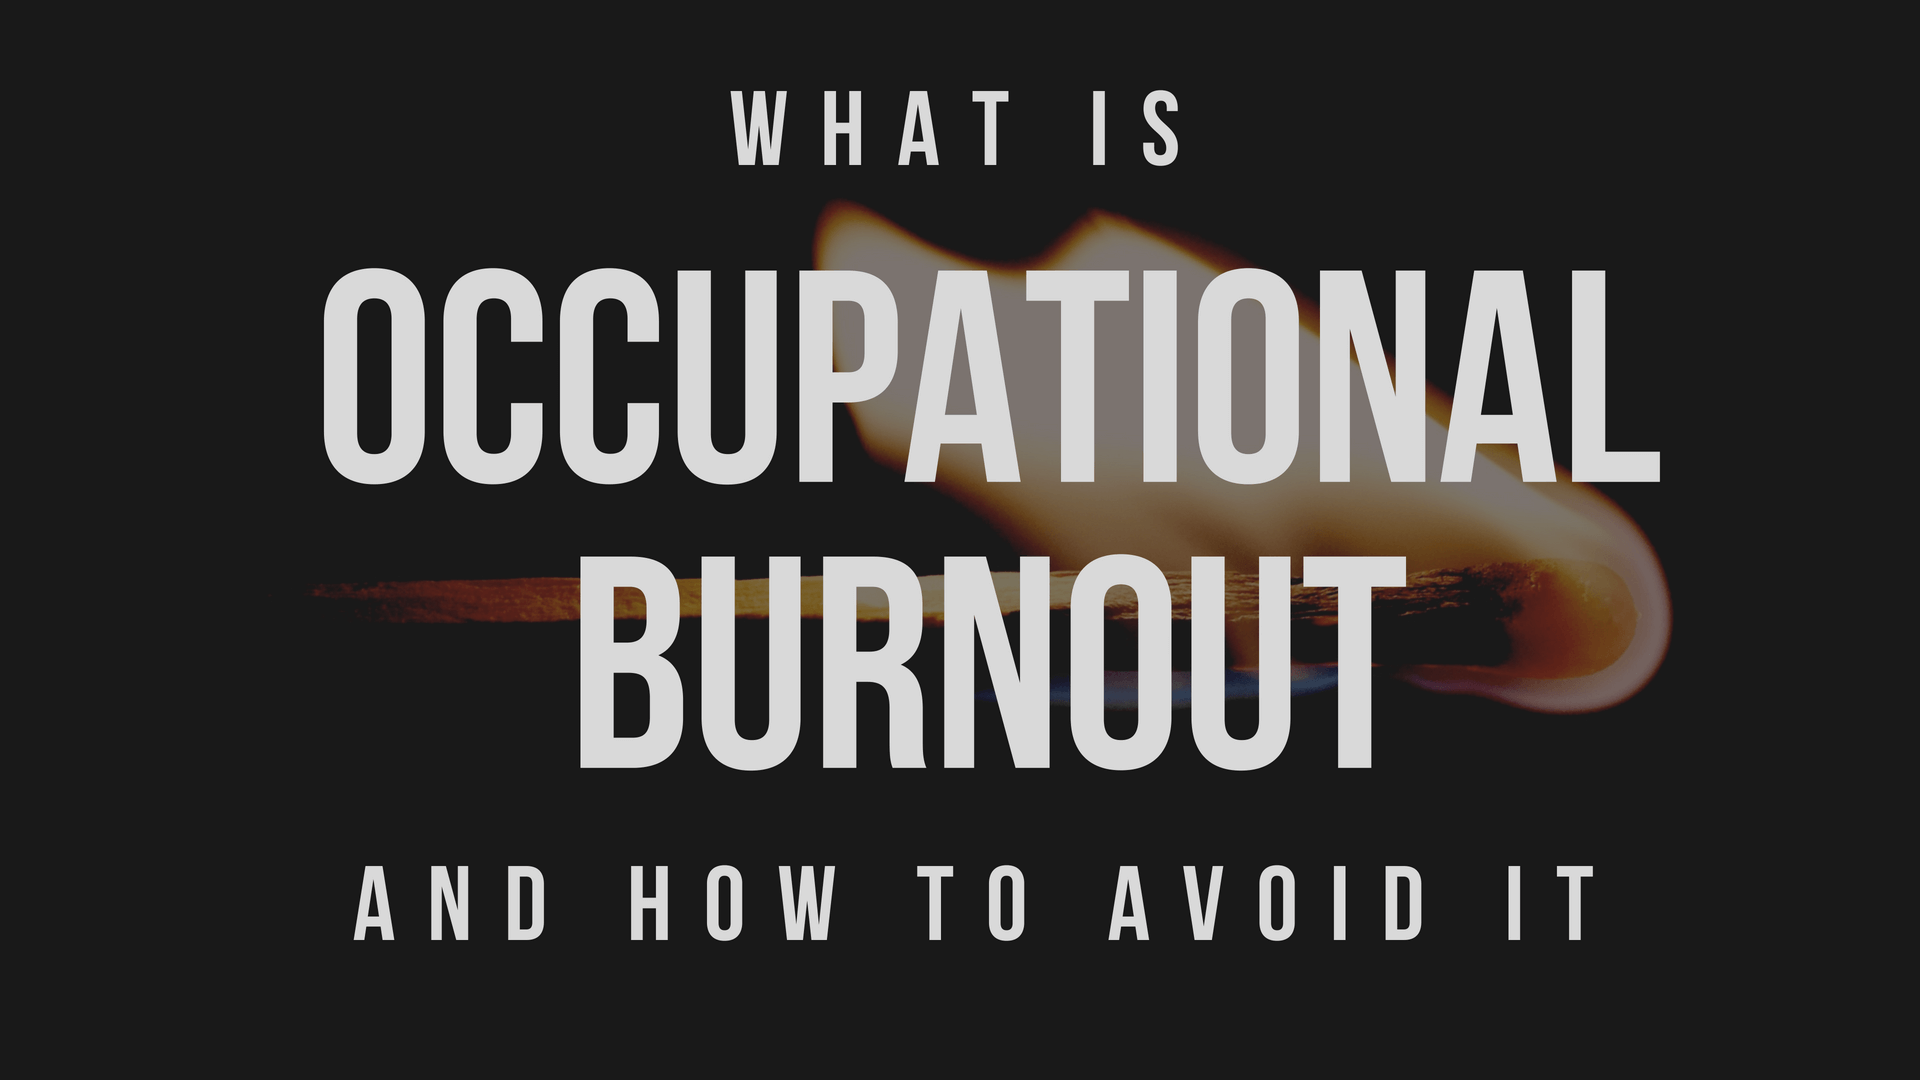 What is occupational burnout and how to avoid it